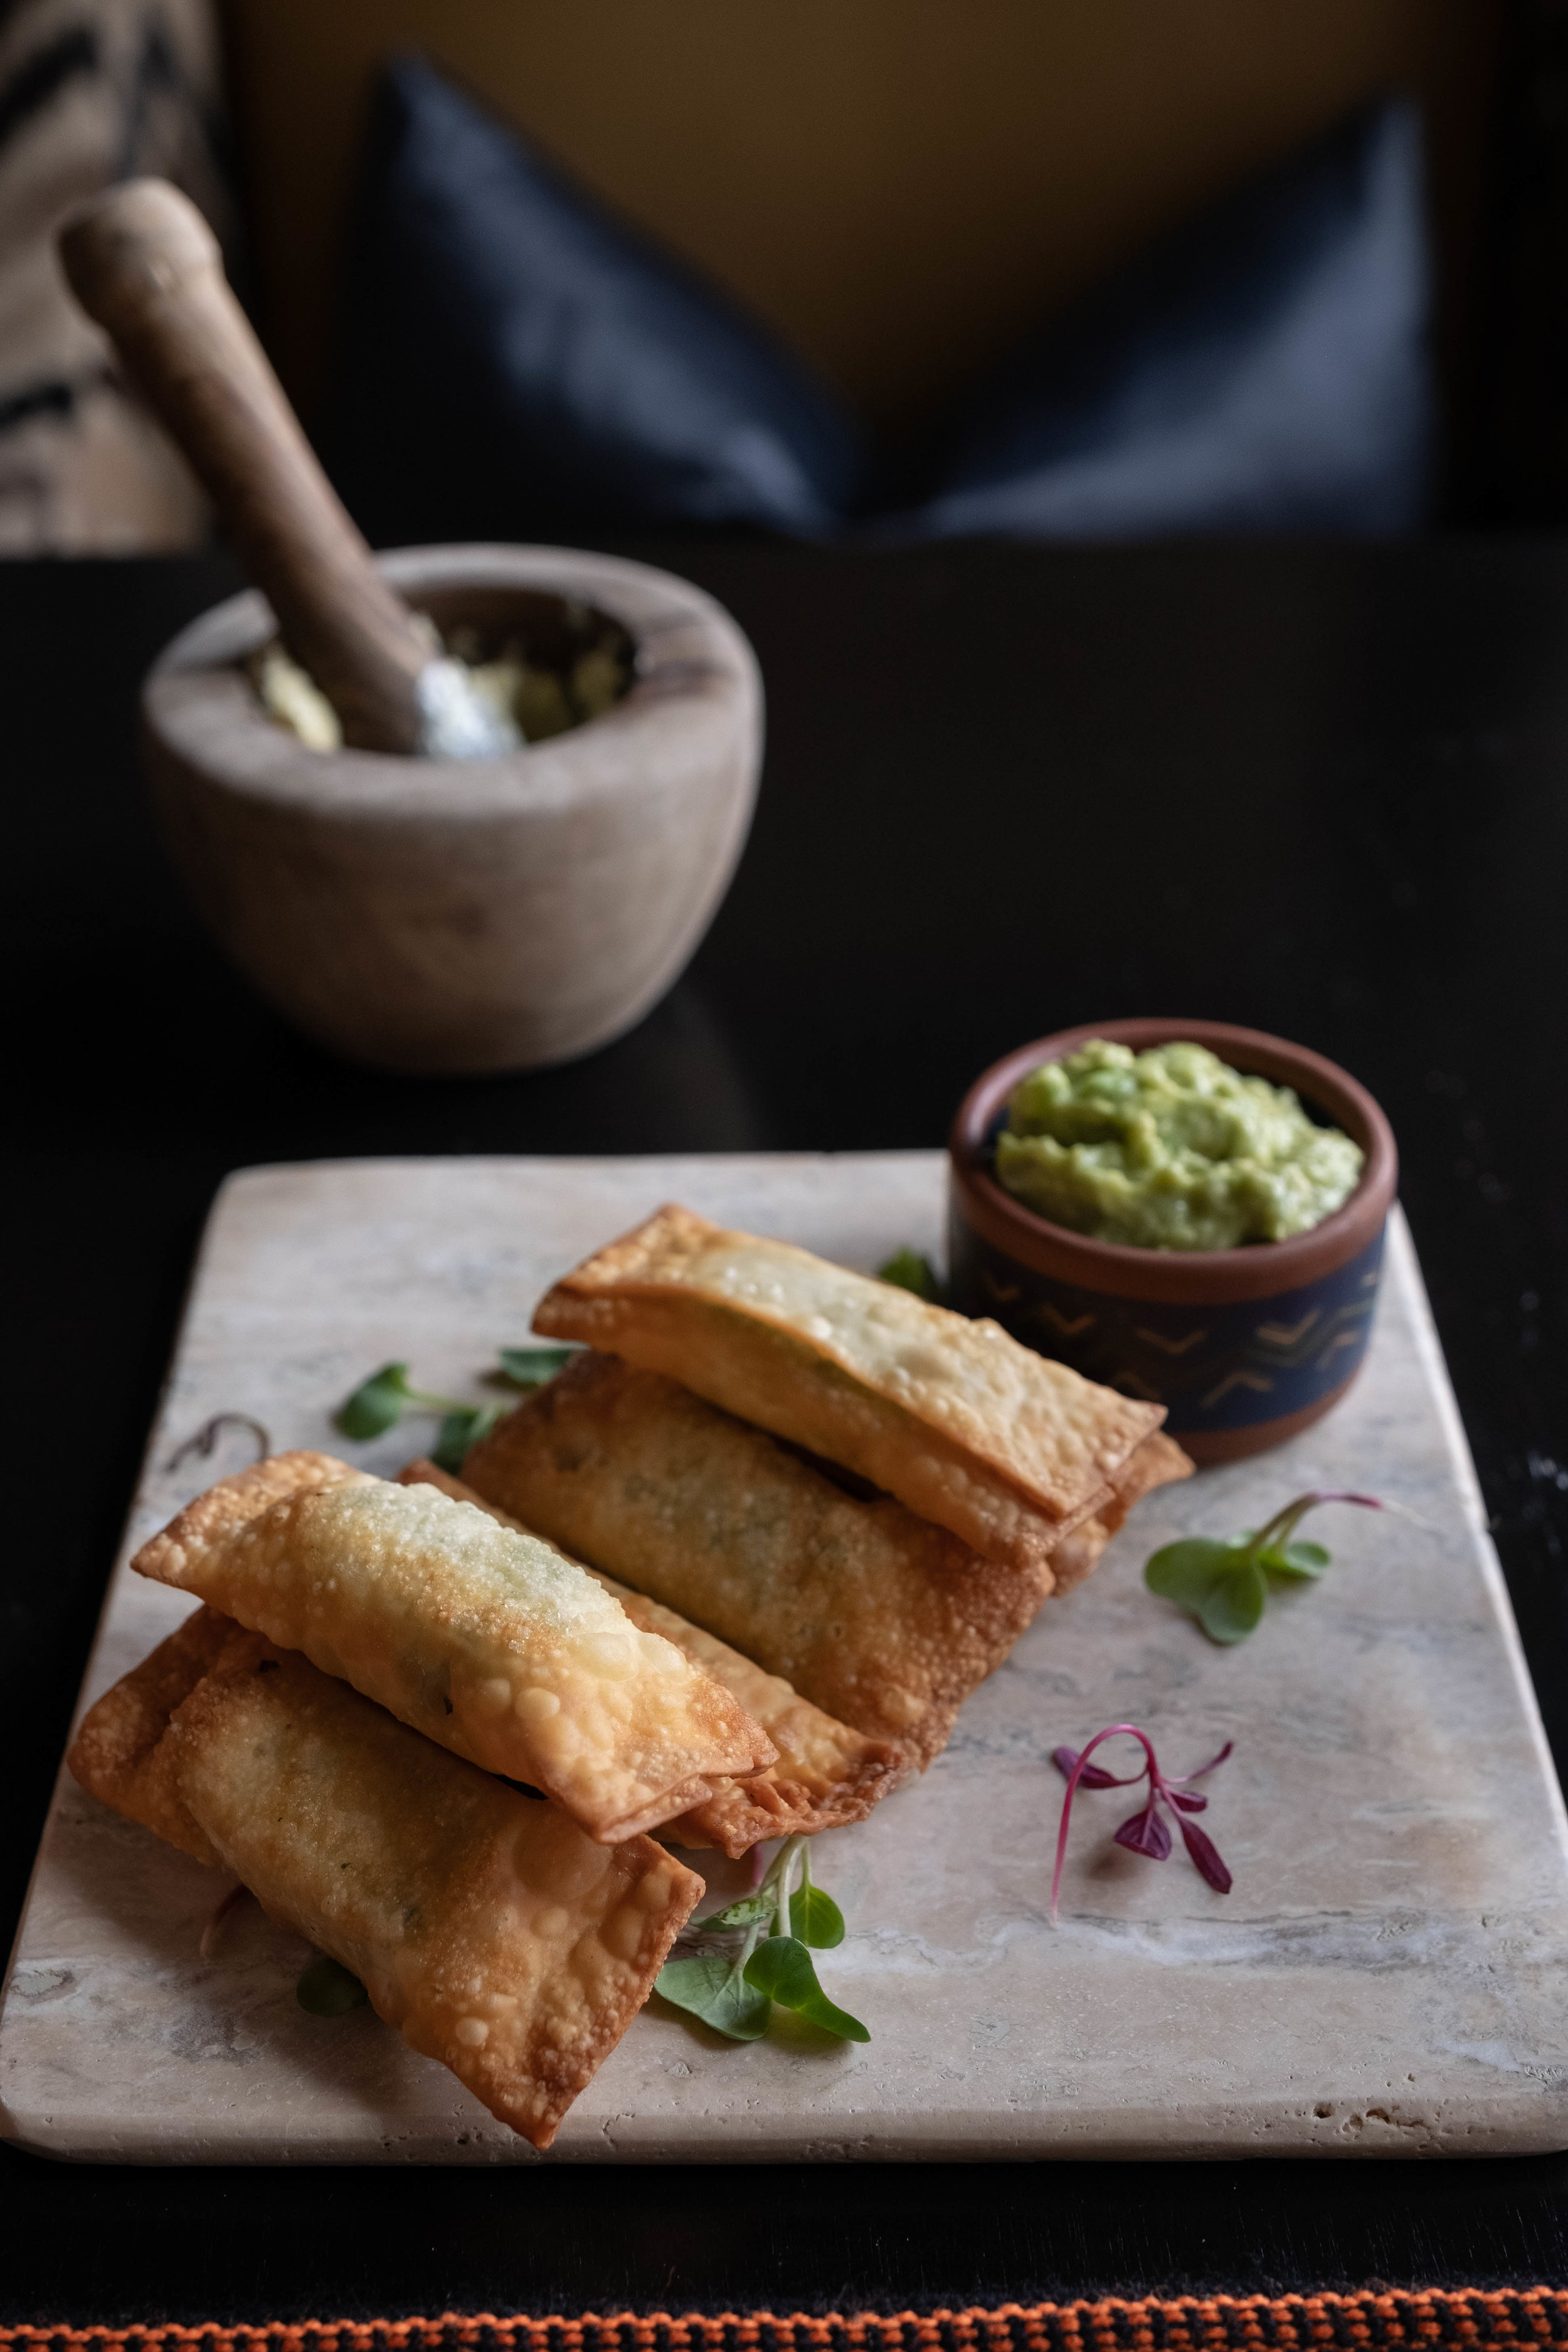 Qespi Restaurant and Bar has a menu that includes local dishes, like Andean cheese tucked into a crispy pocket and garnished with micro greens grown in the courtyard.